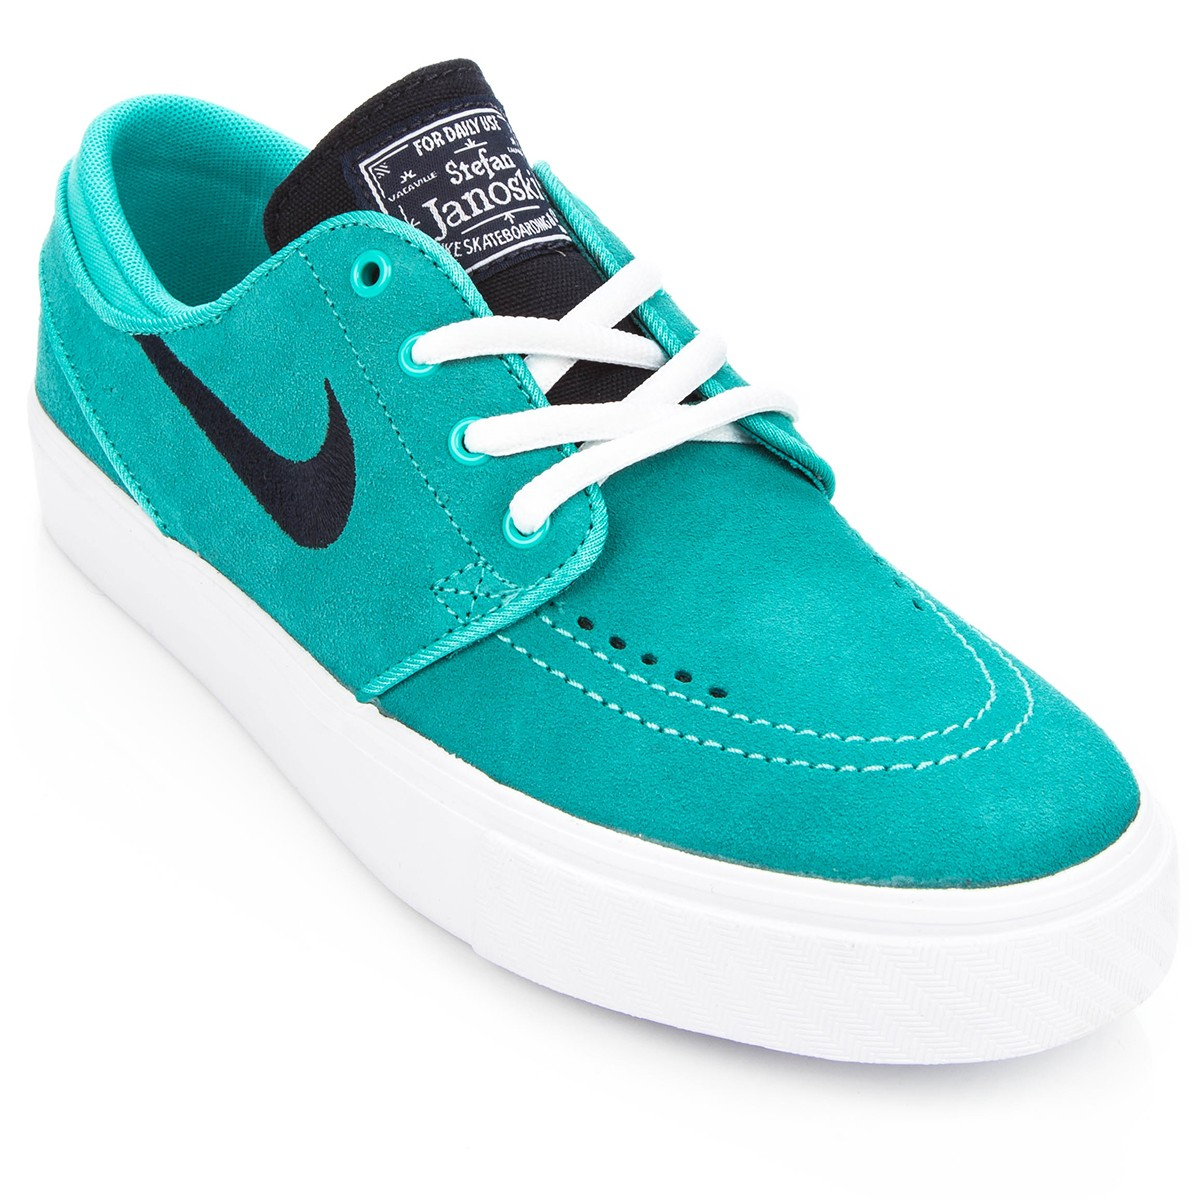 Nike Stefan Janoski Big Kid Shoes - Lt Retro/Dk Obsidian/White - 5.0